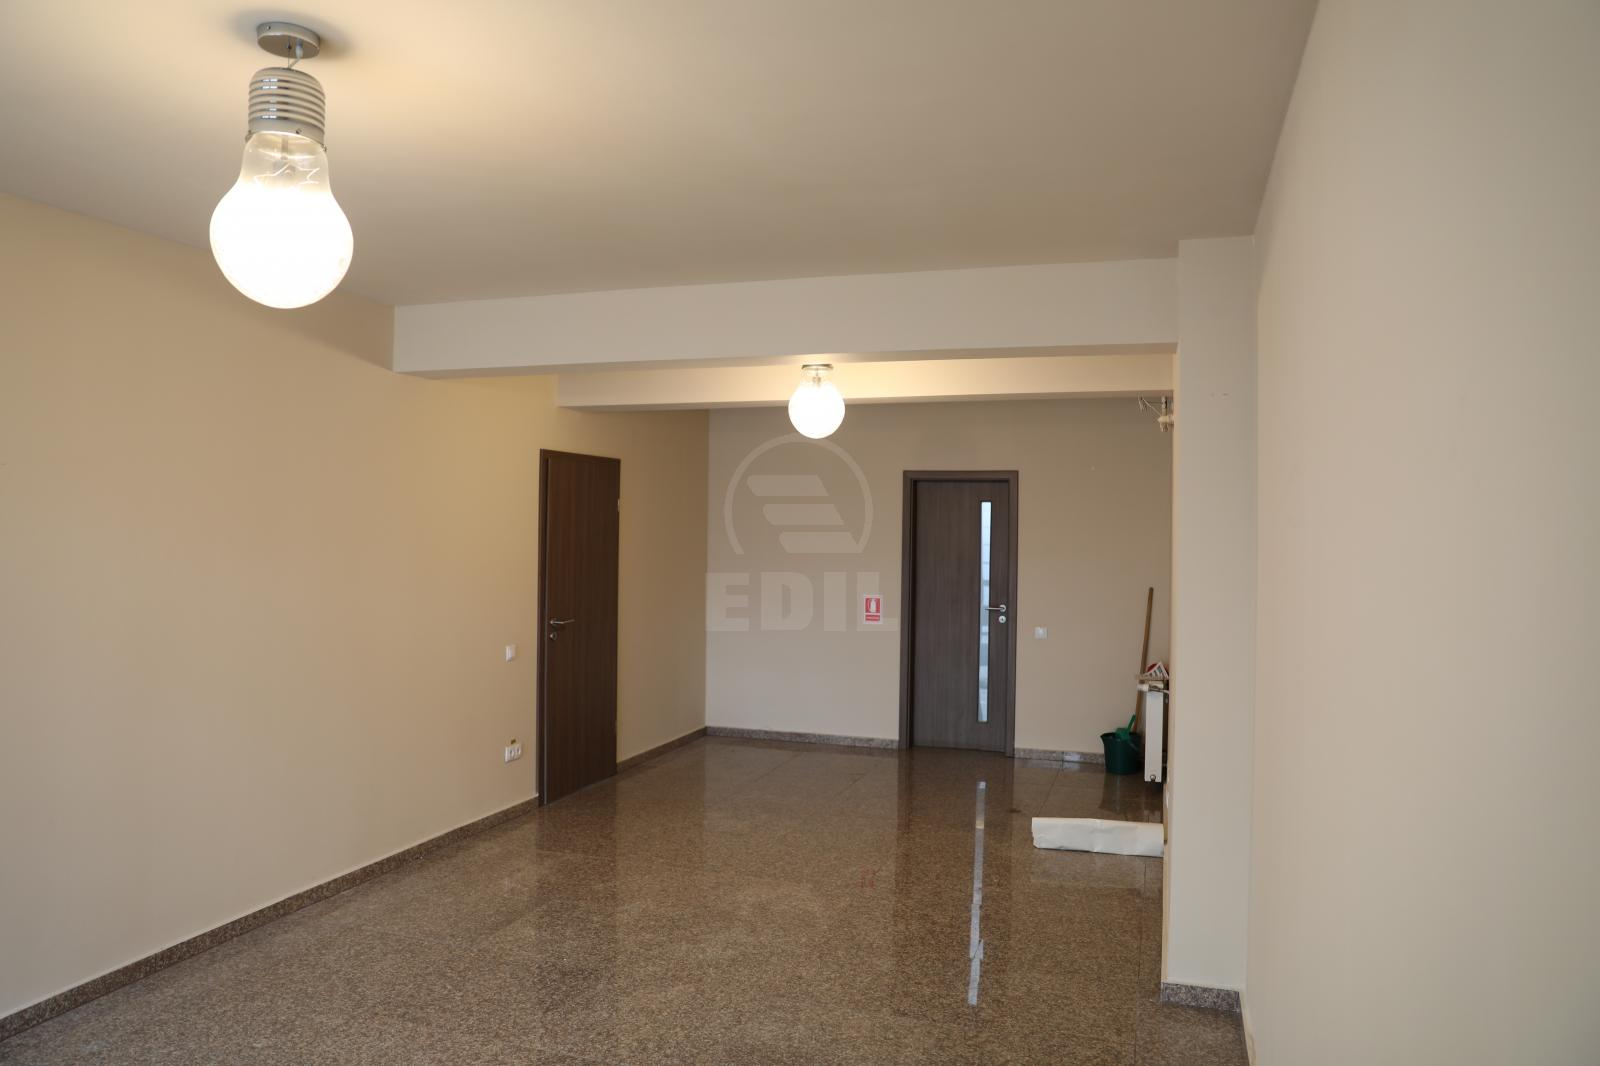 Commercial space for sale 3 rooms, SCCJ297529-5